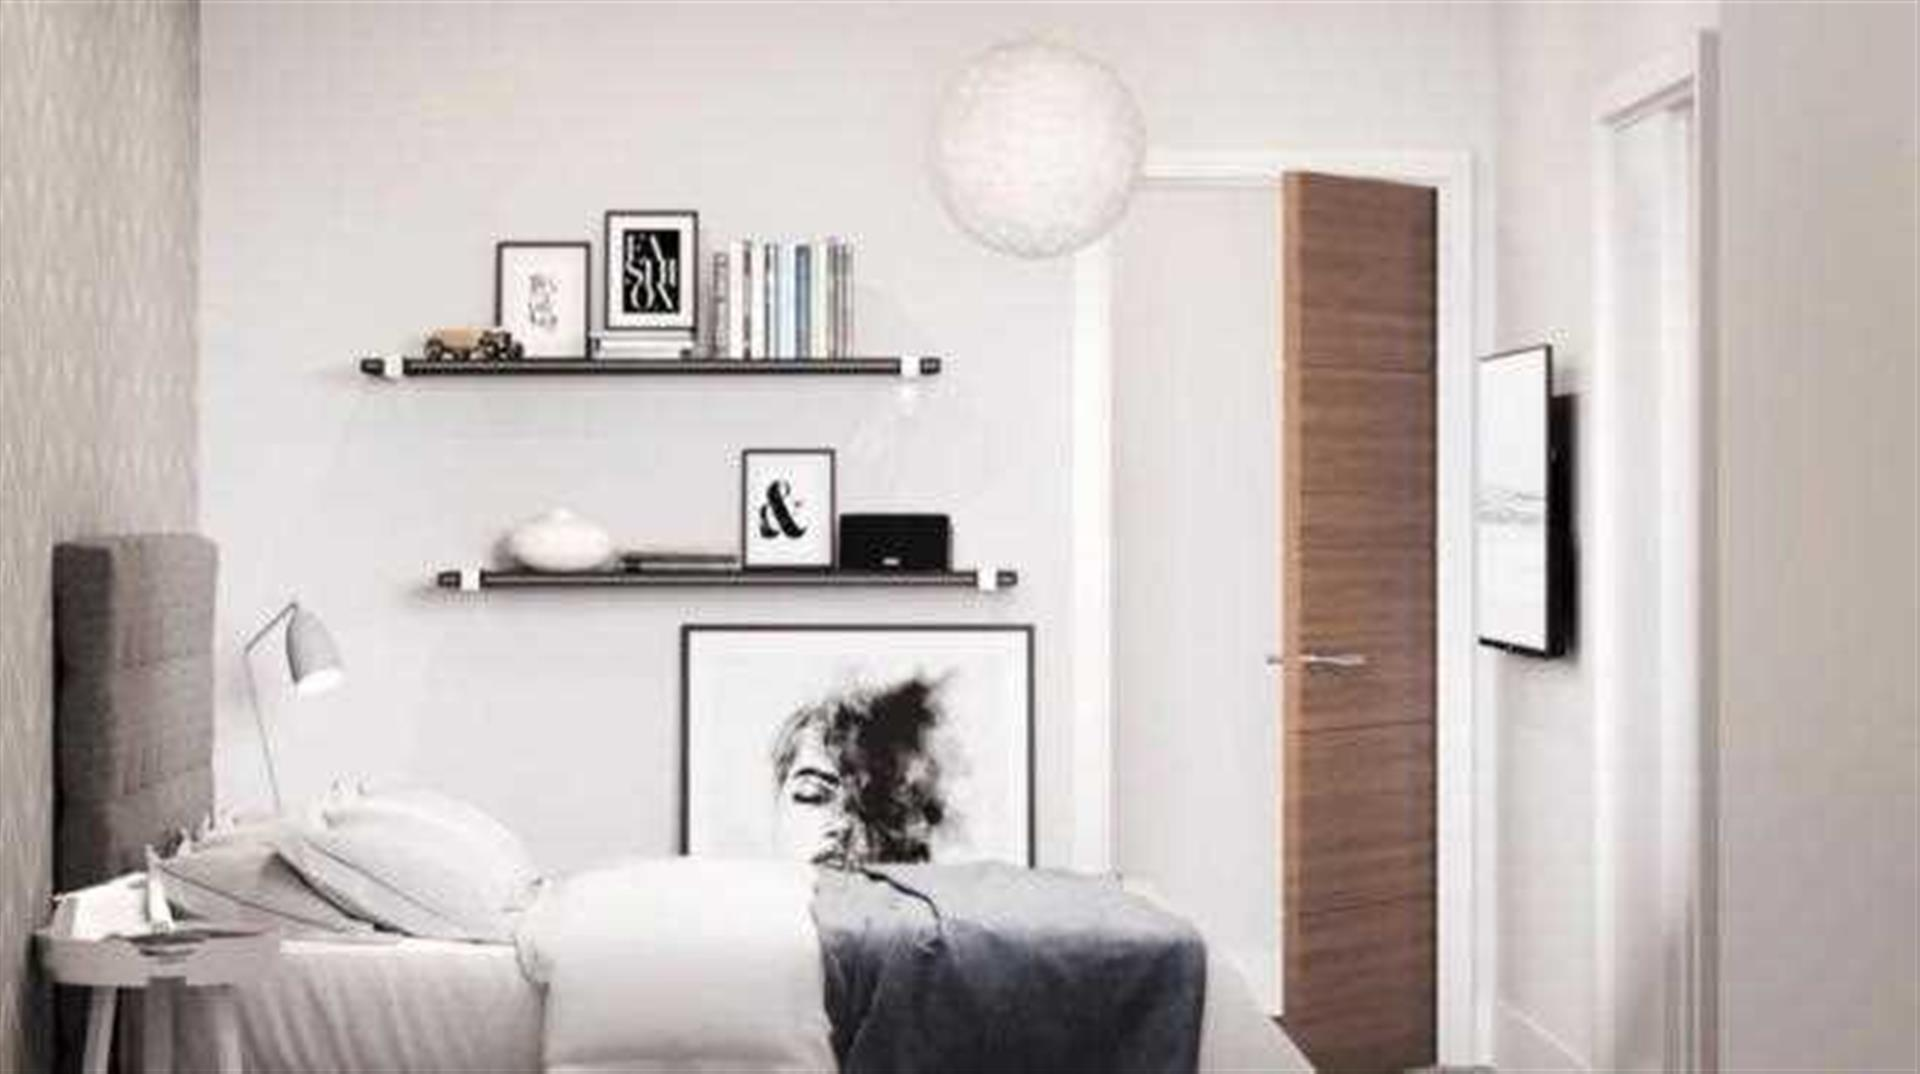 2 Bedroom Apartment Flat / Apartment To Rent - Image 3